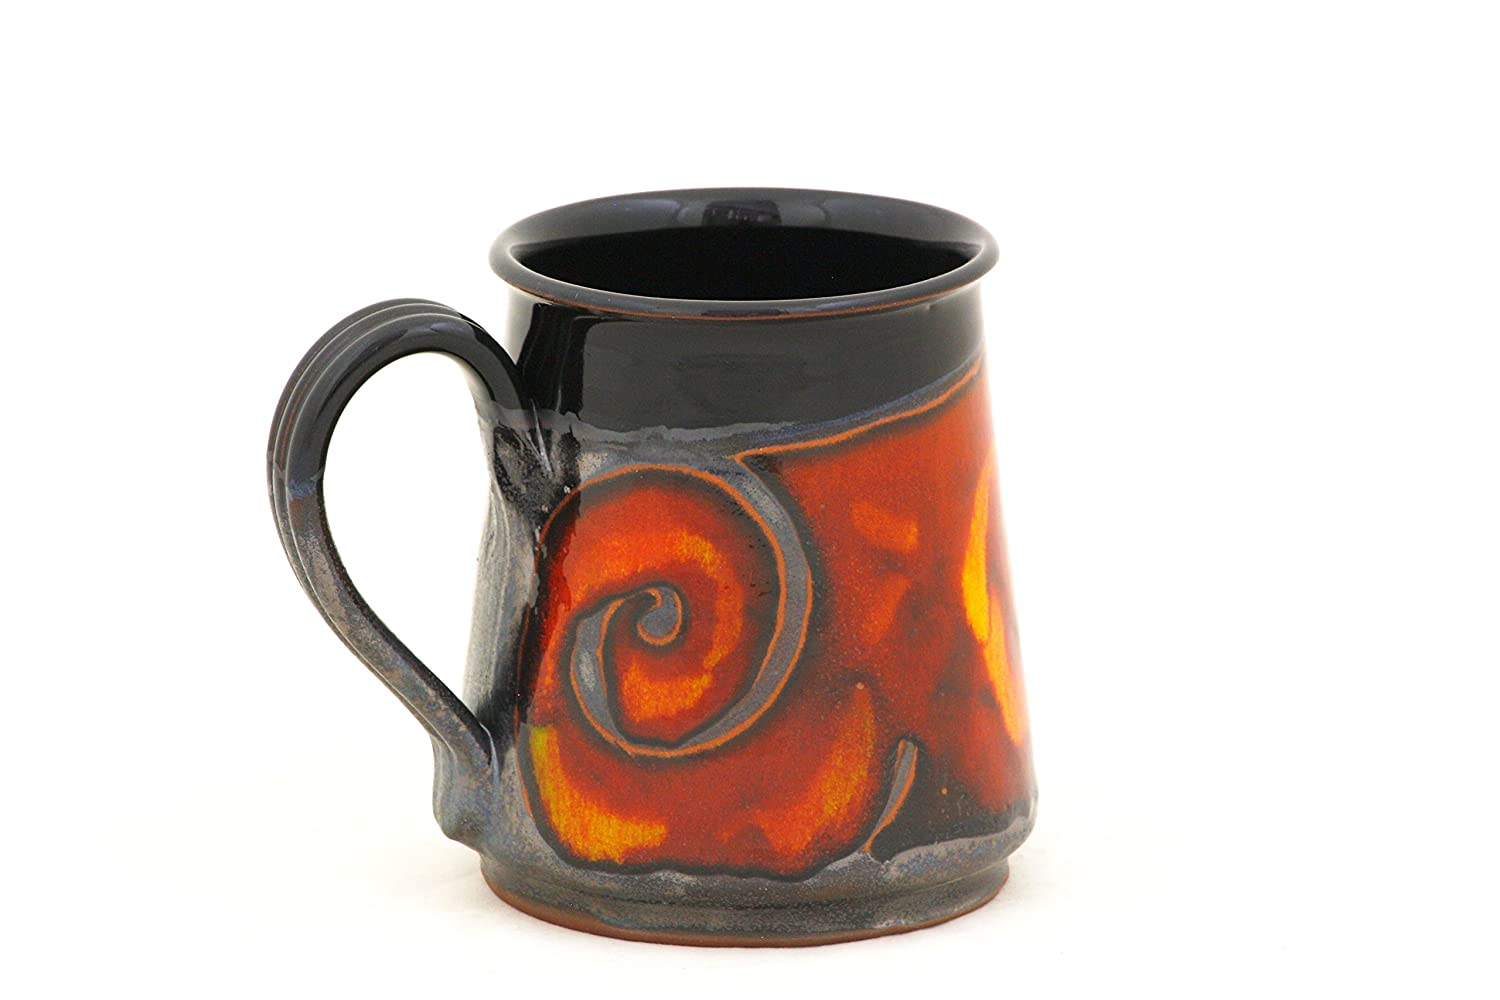 Halloween Stein, Pottery Beer Mug 24oz, Ceramic Stein, Pottery Mug for Beer and Coffee, Stoneware Large Mug, Groom Gift